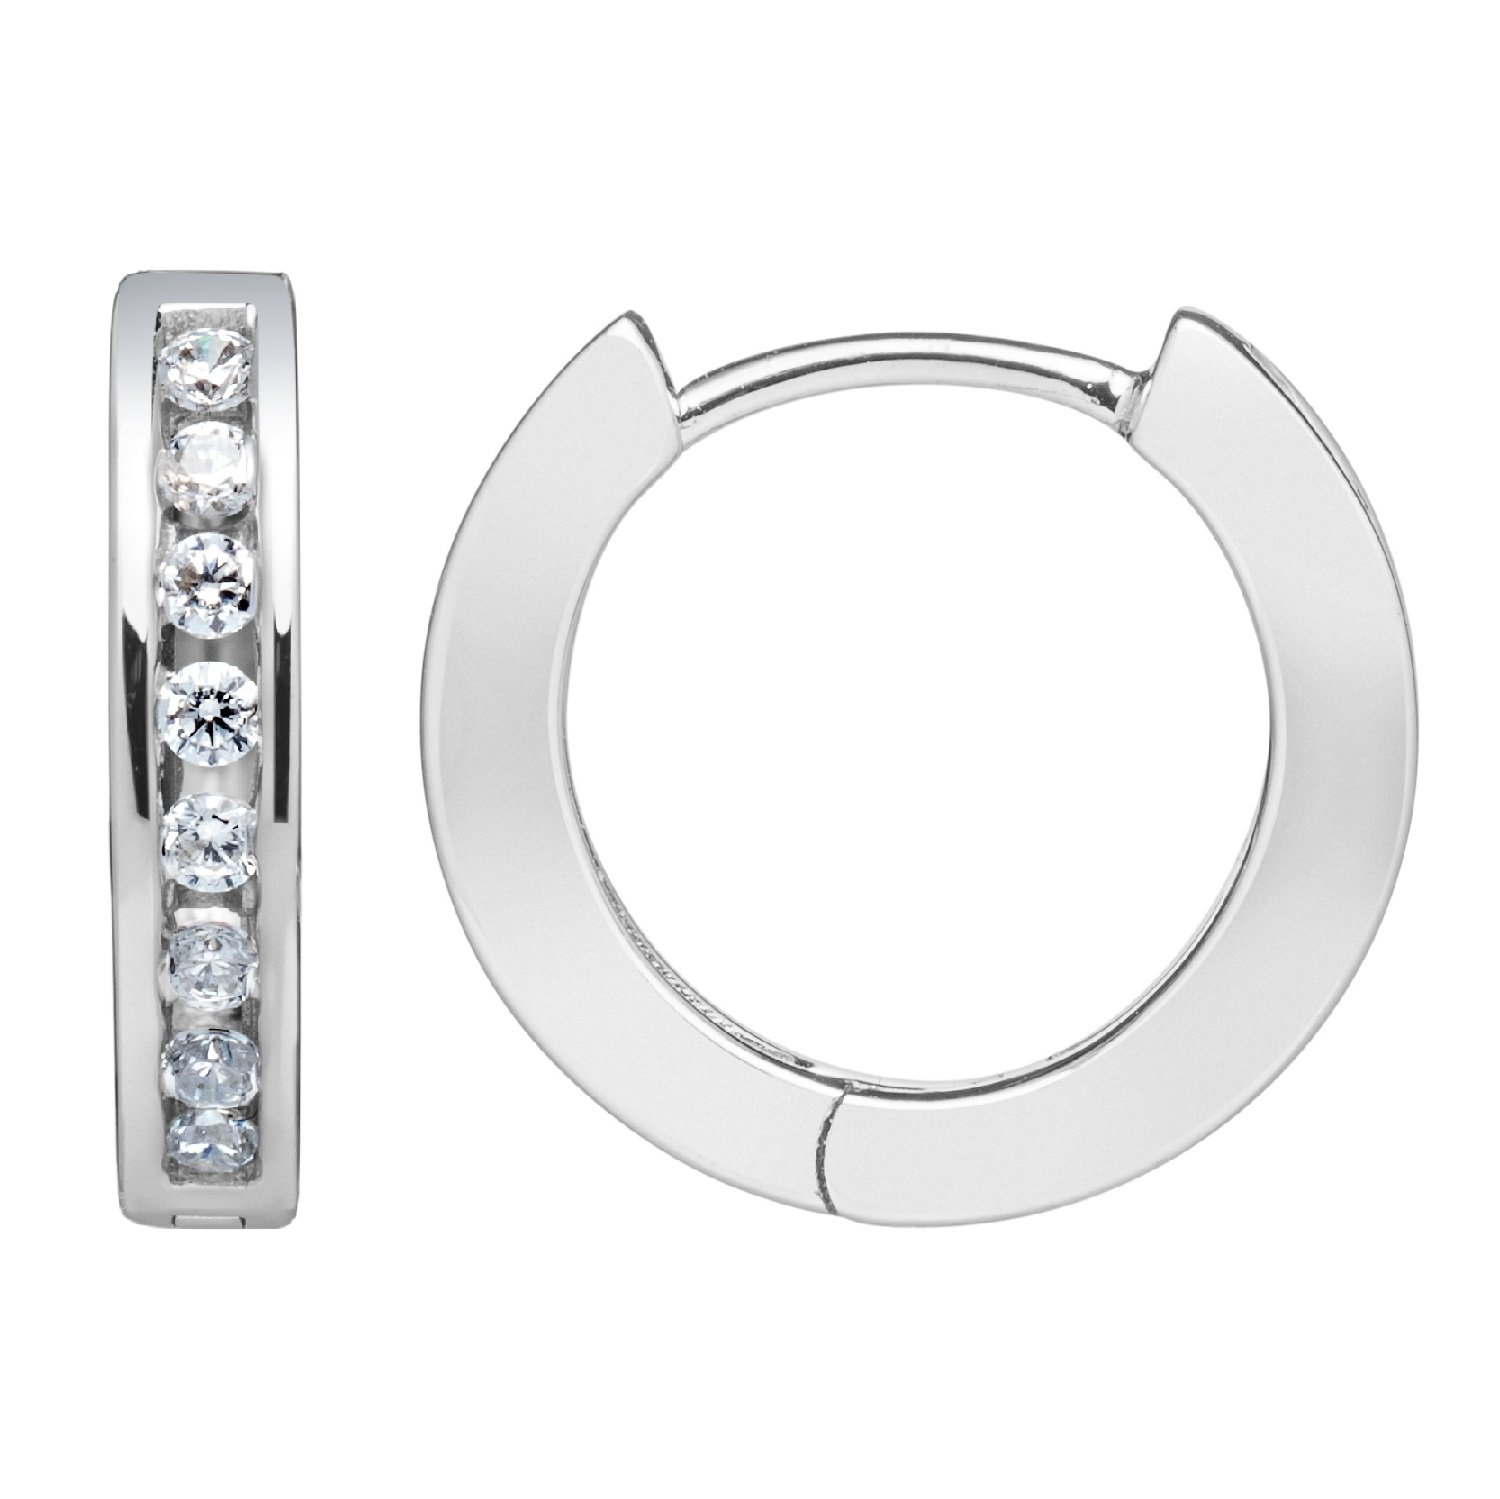 14K Solid White Gold Round Cut Huggie Hoop Channel Set Cubic Zirconia Earrings 13.5mm (.16 ctw, Diamond Equivalent), Gift Box